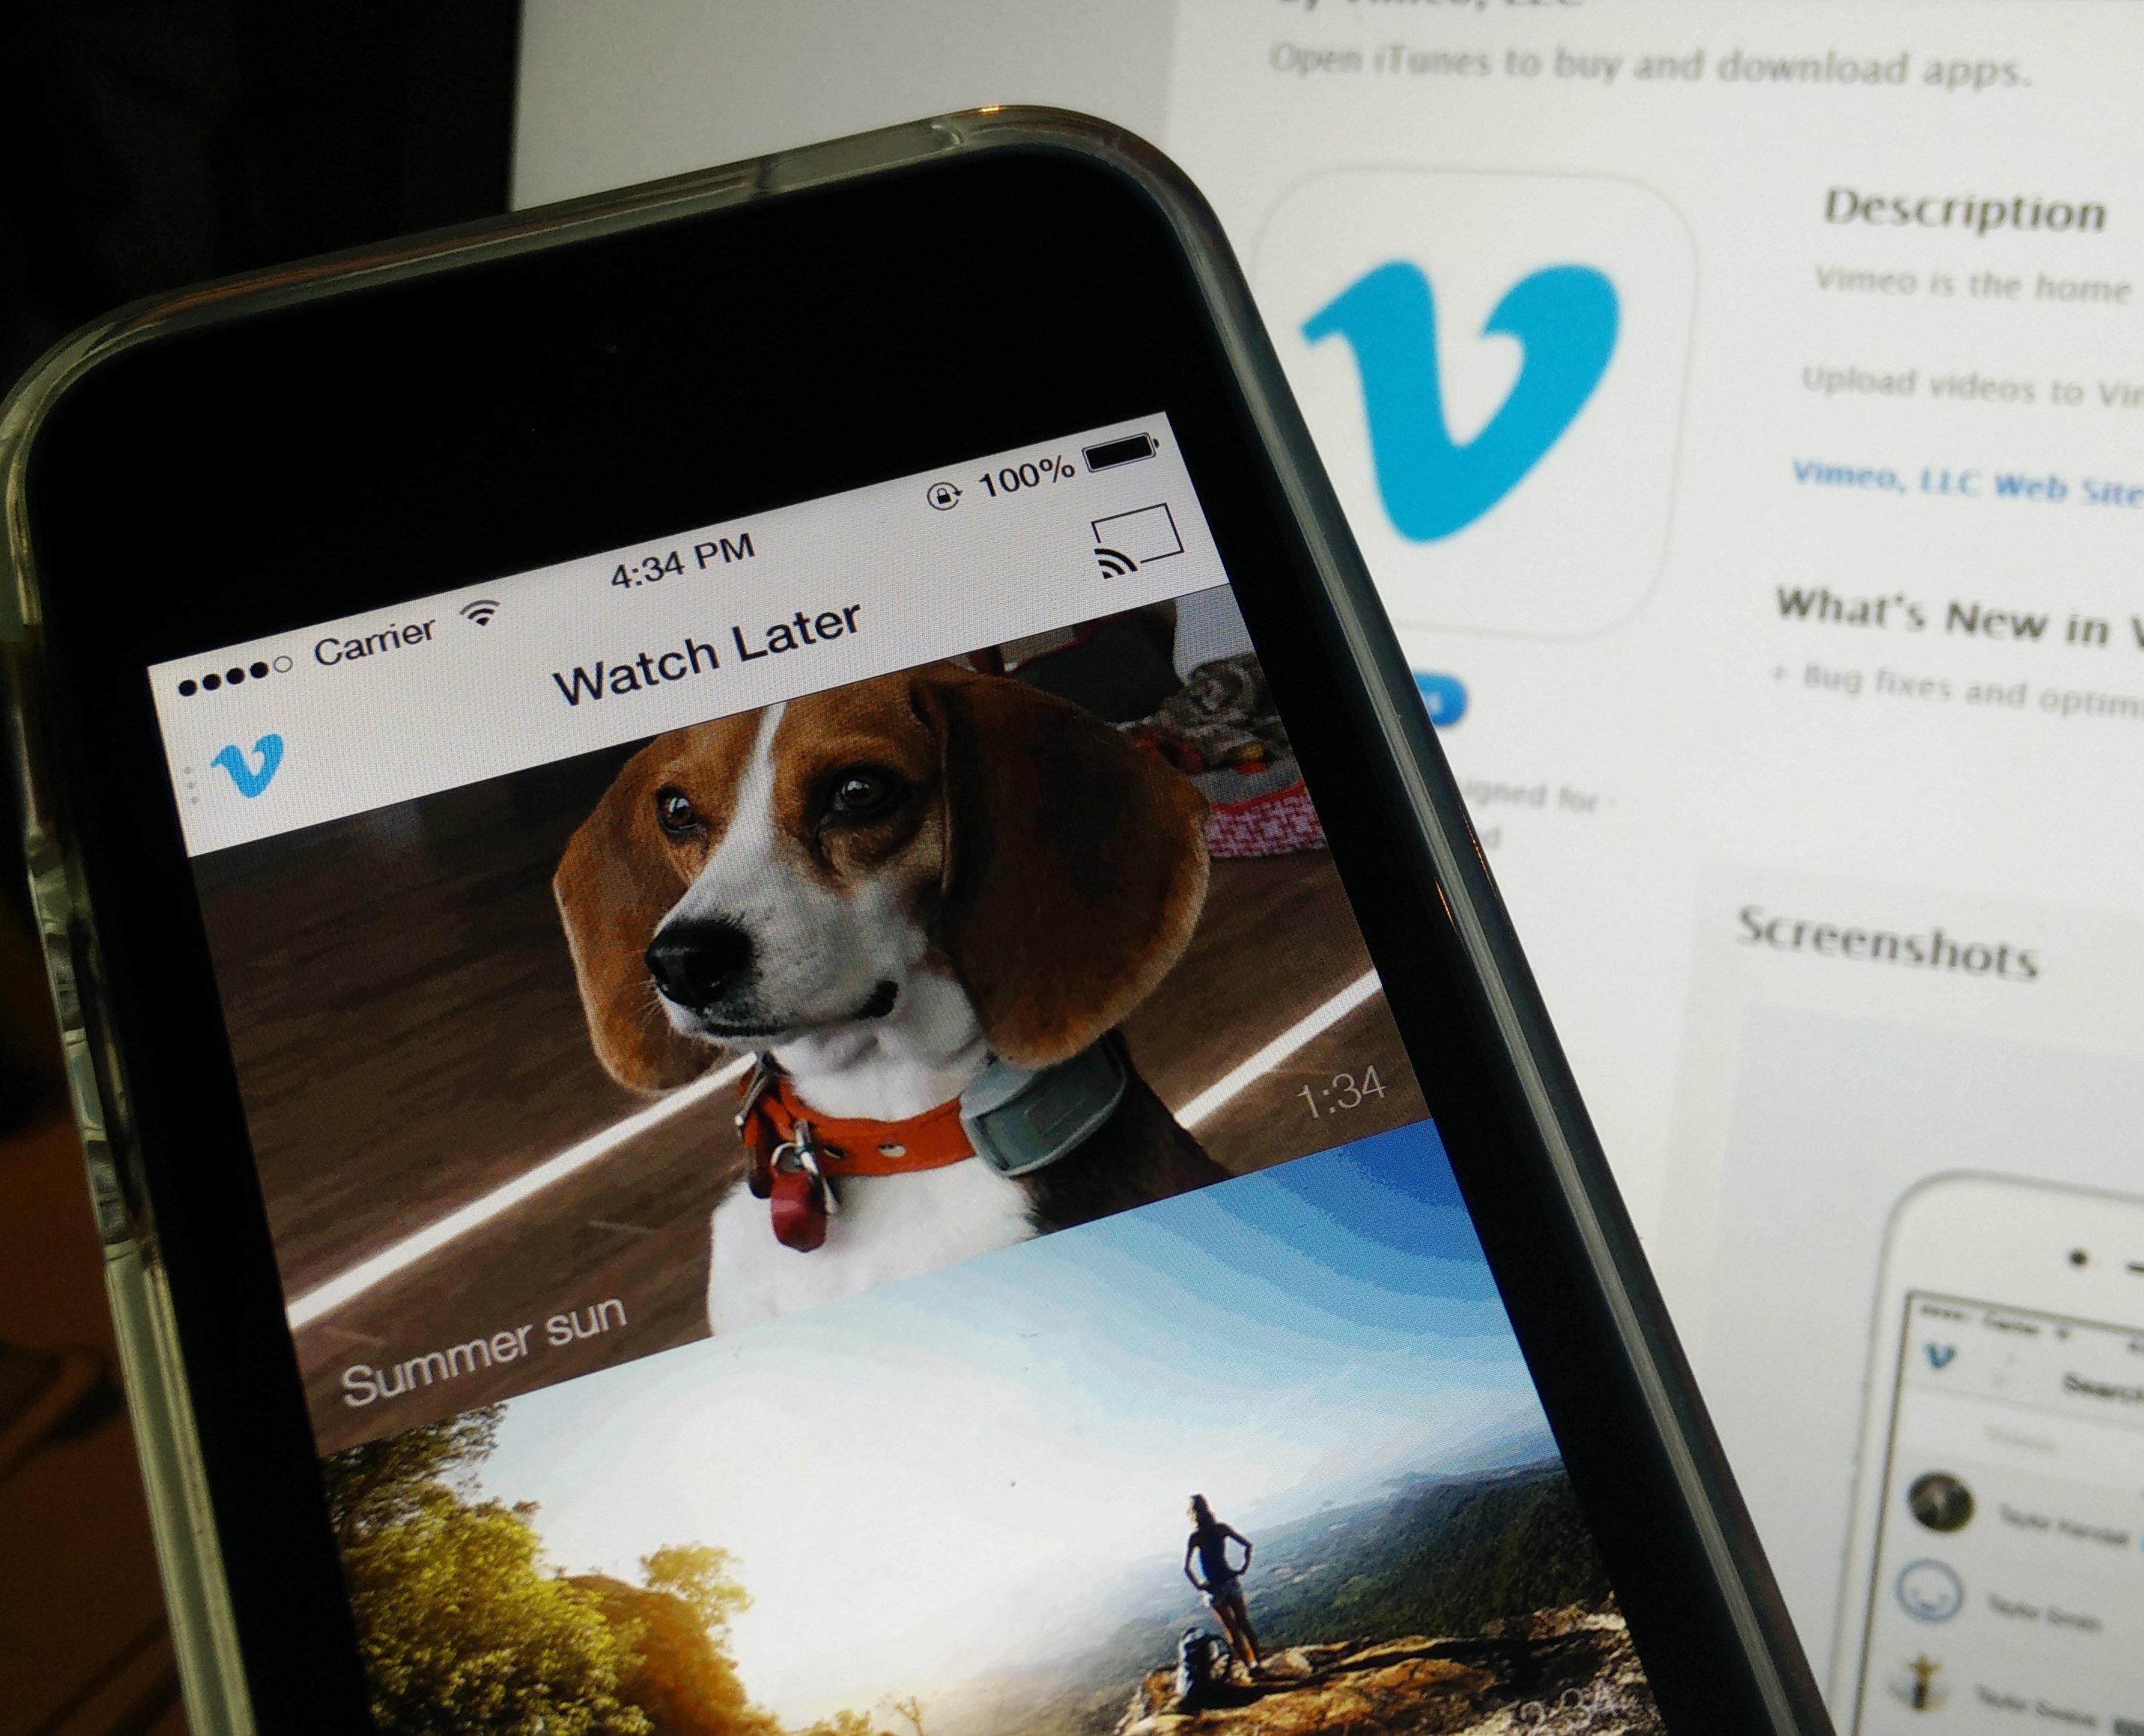 Vimeo Finally Introduces Chromecast Support But Only On Ios Venturebeat